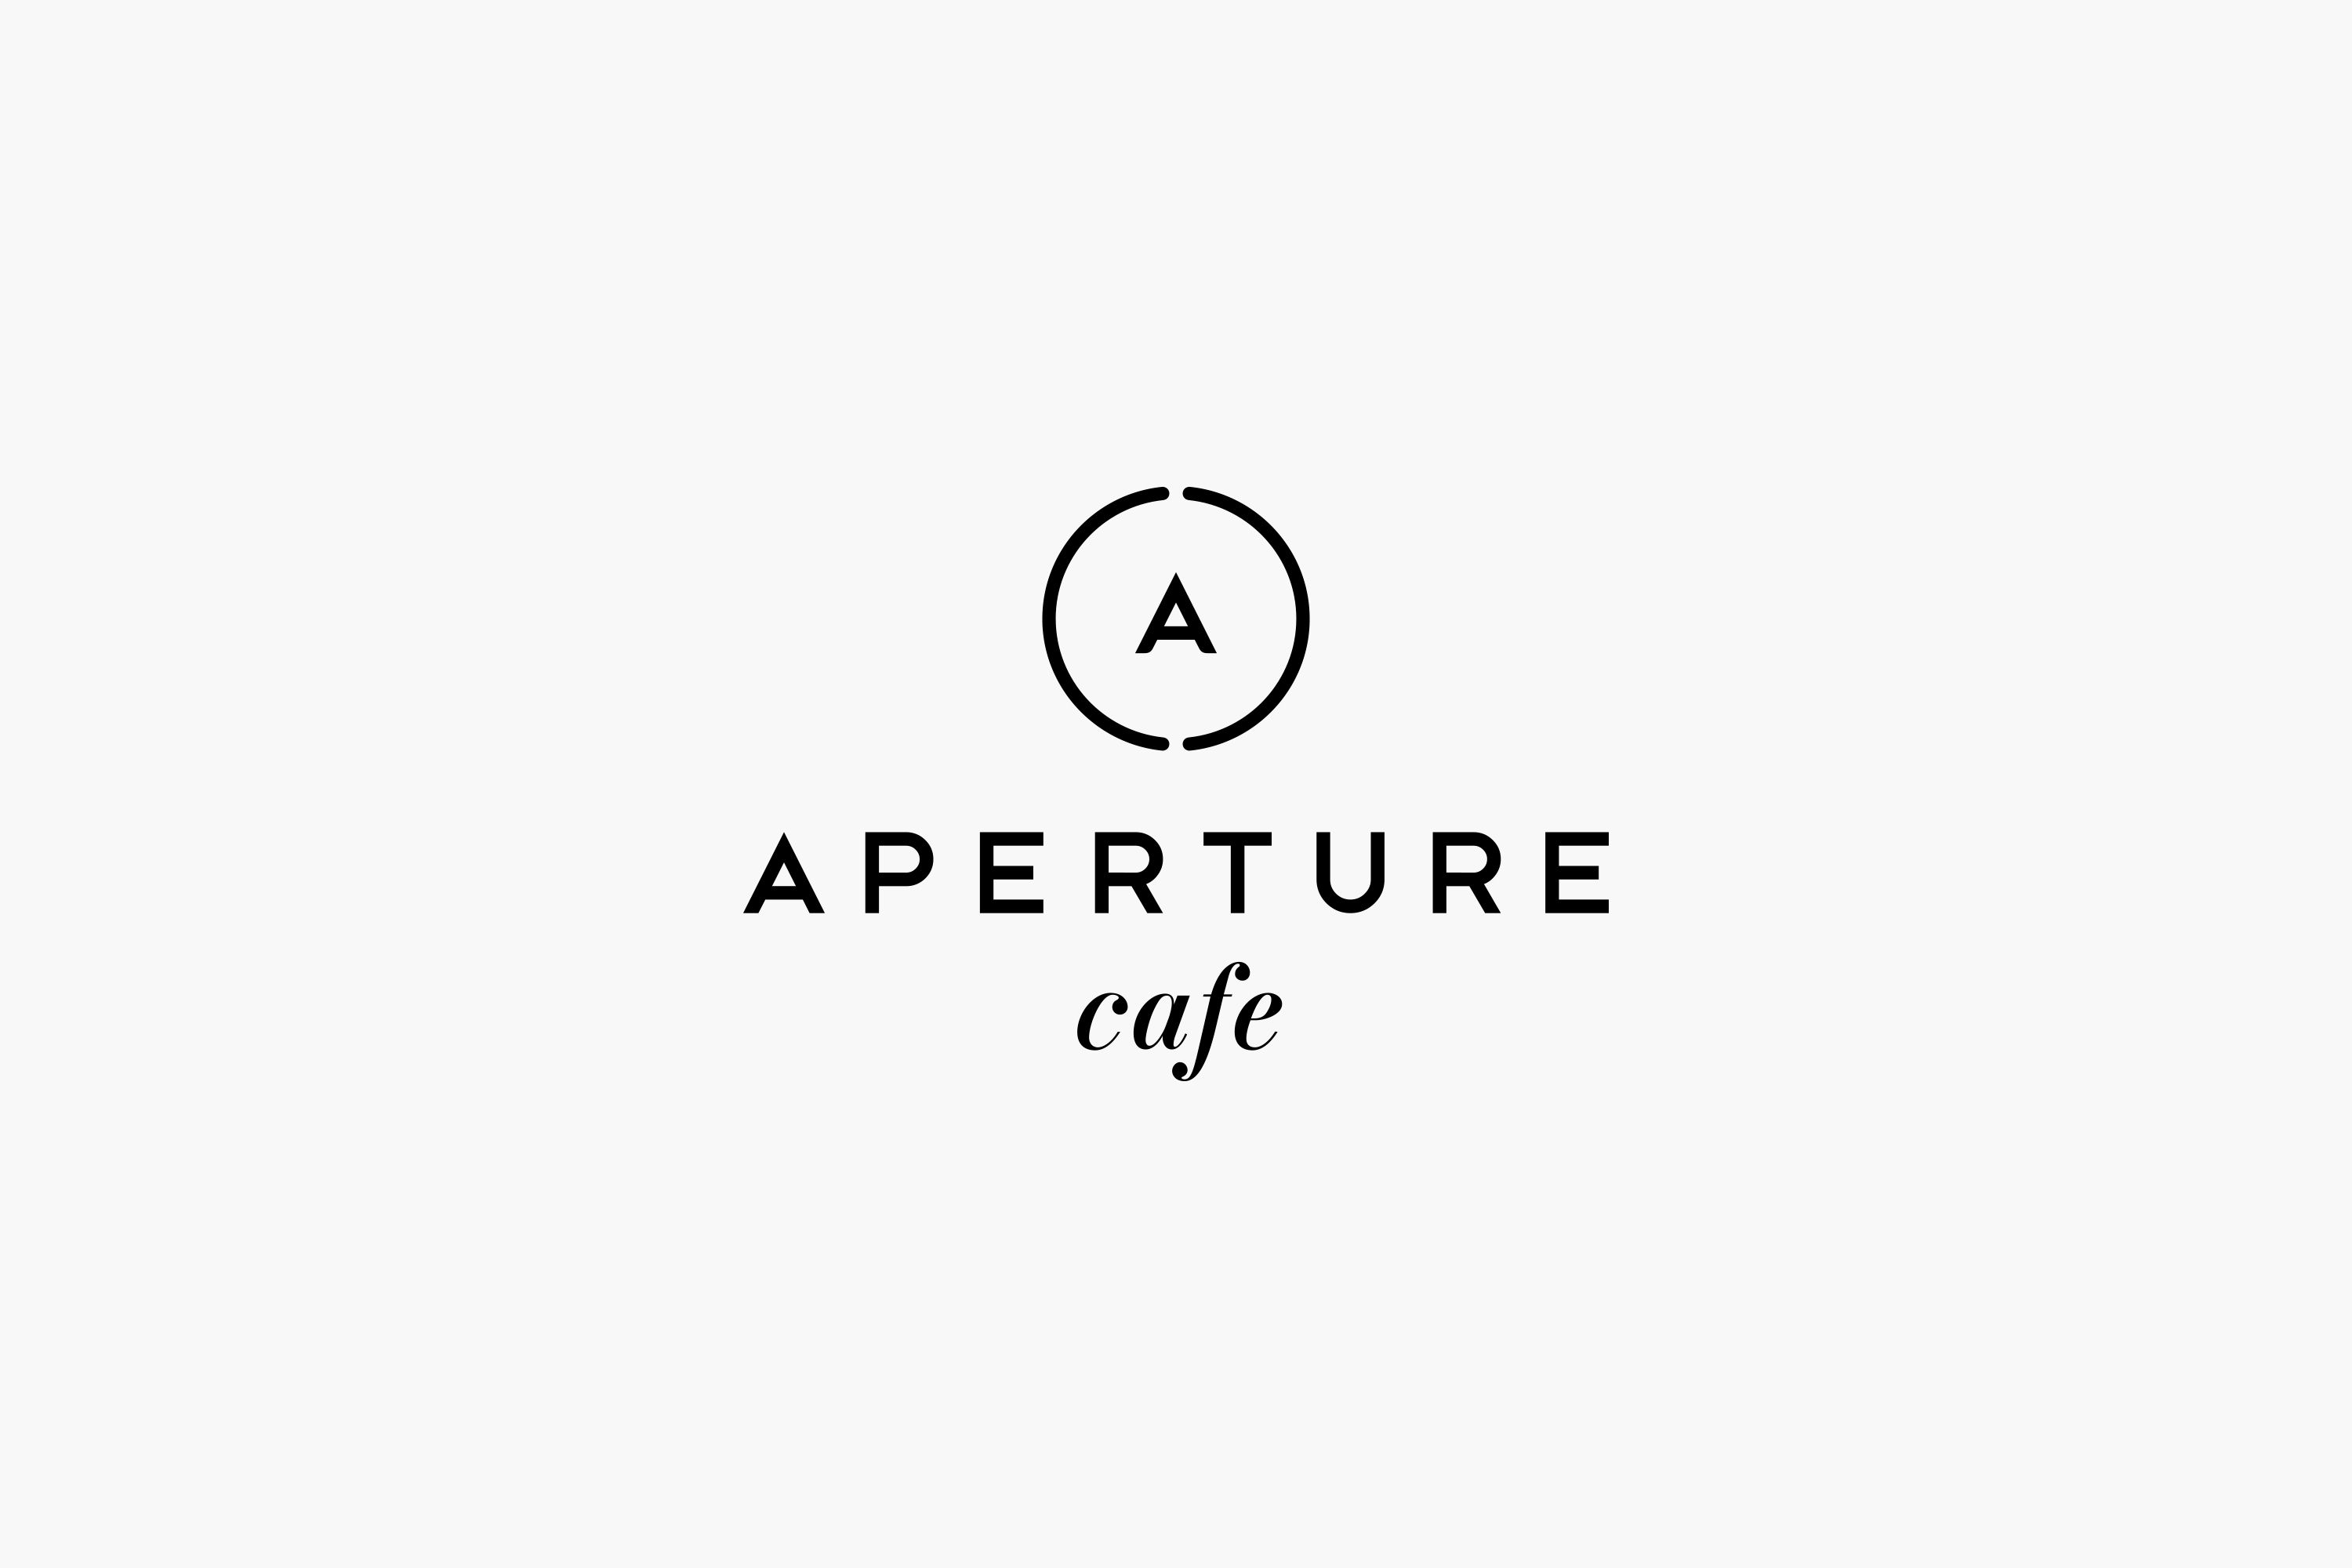 Superposition Studio Aperture Logo Logotype Cafe Typography Lettering